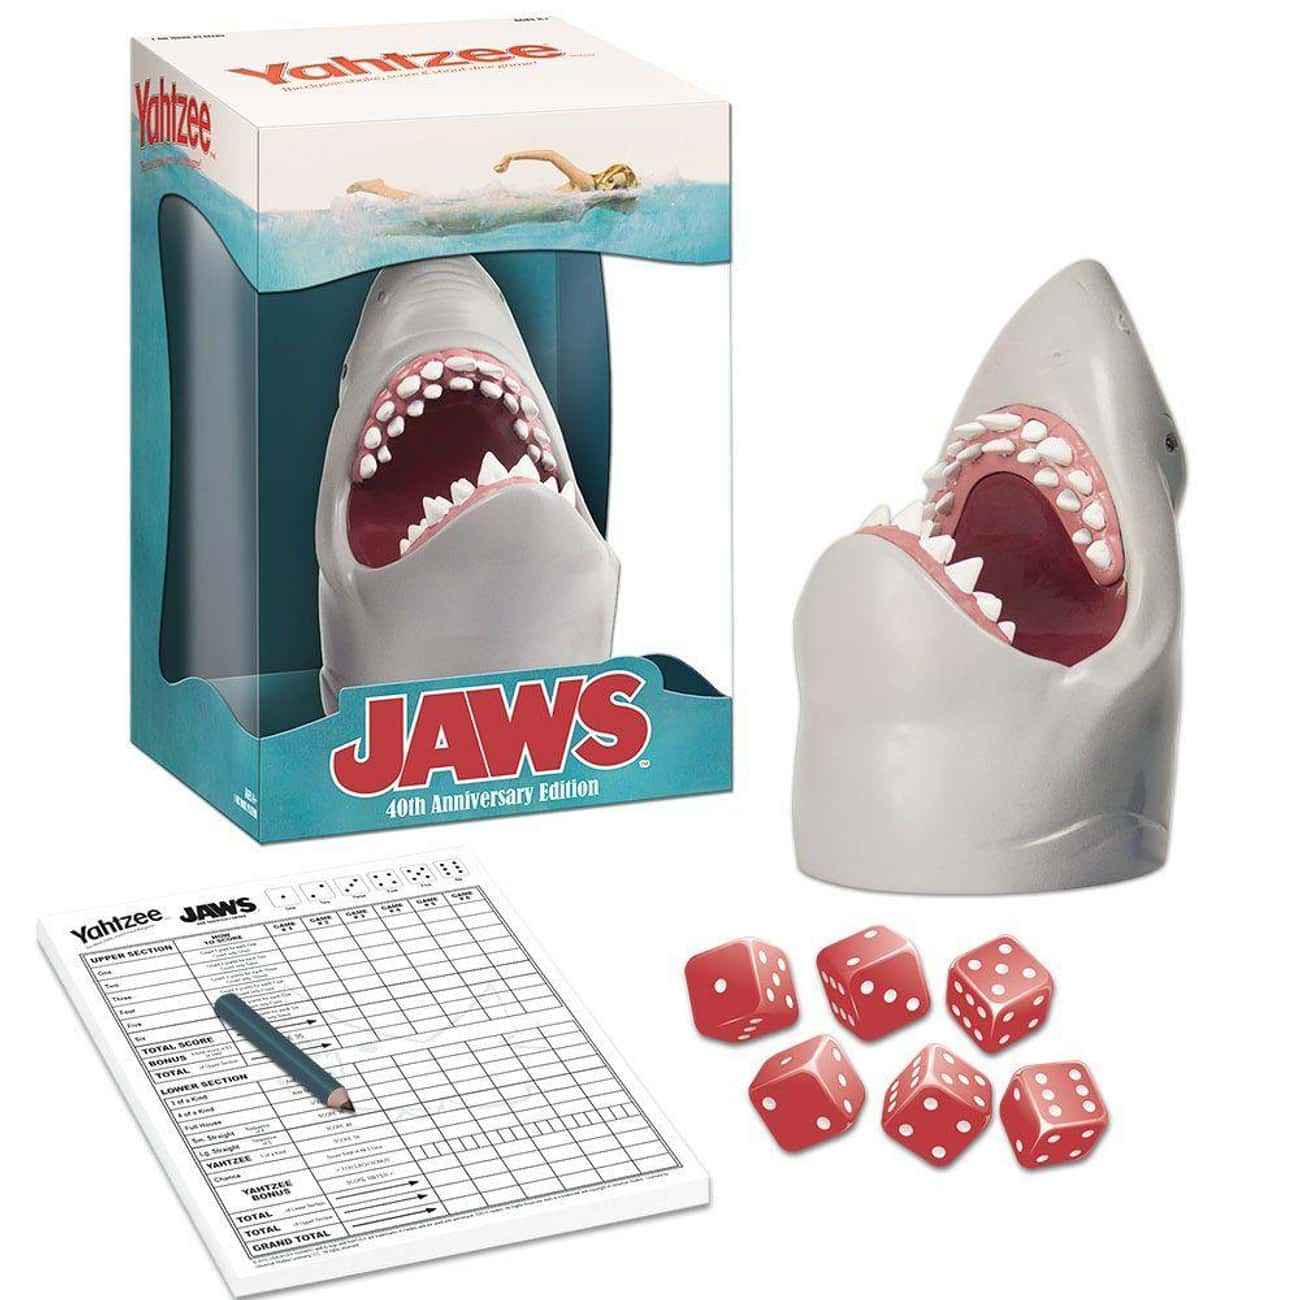 Jaws 40th Anniversary Edition